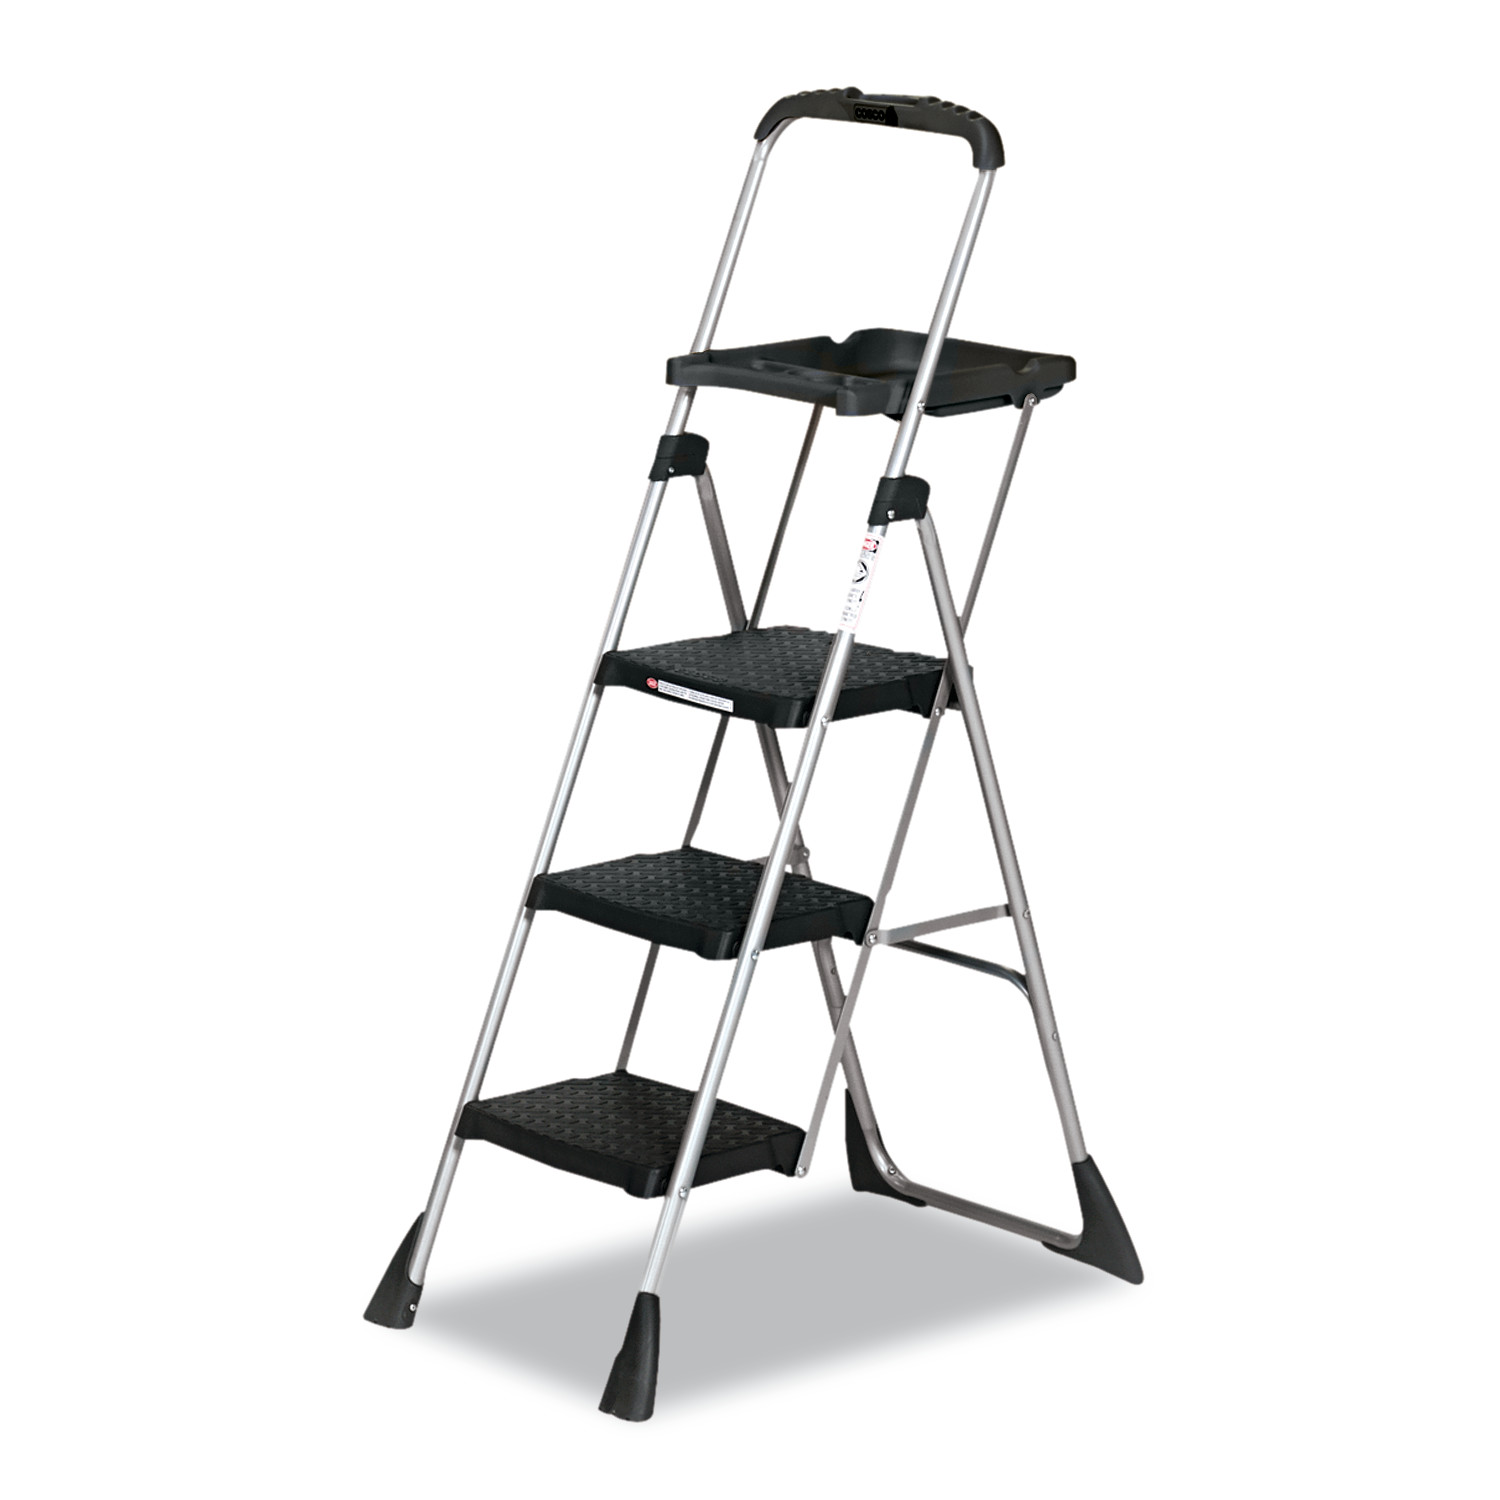 Cosco Max Work Steel Platform Ladder 22w x 31d x 55h 3-Step  sc 1 st  Walmart & Cosco Max Work Steel Platform Ladder 22w x 31d x 55h 3-Step ... islam-shia.org